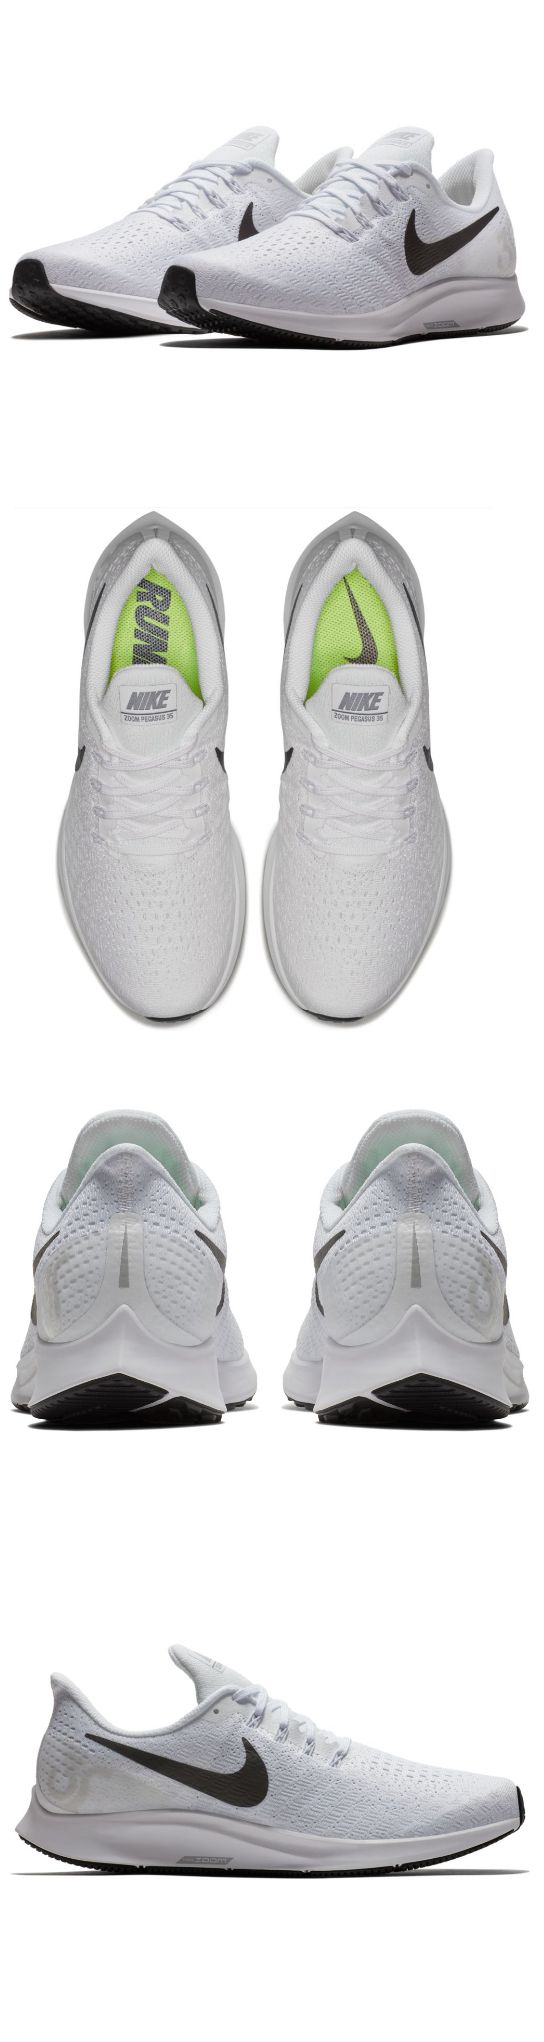 hot sale online 127c2 be66b Other Clothing Shoes and Accessories 312: Nike Ao3905-100 ...